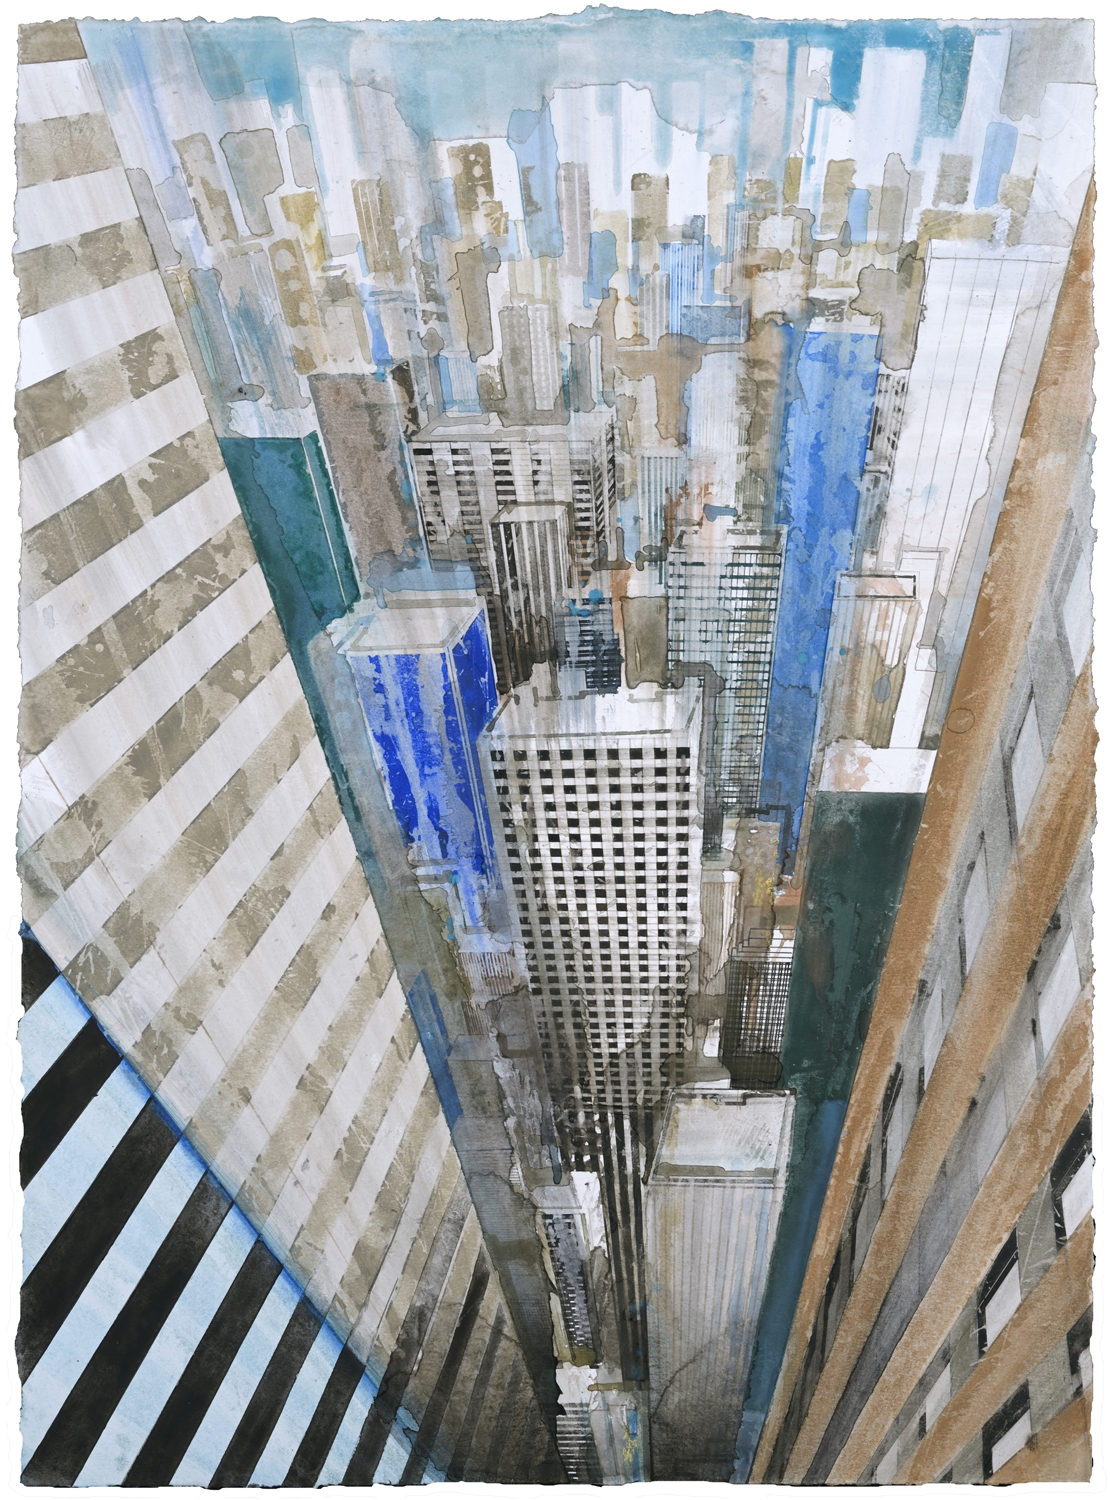 GOTTFRIED SALZMANN, NY Perspective, watercolor, 28 x 21 in, 2017